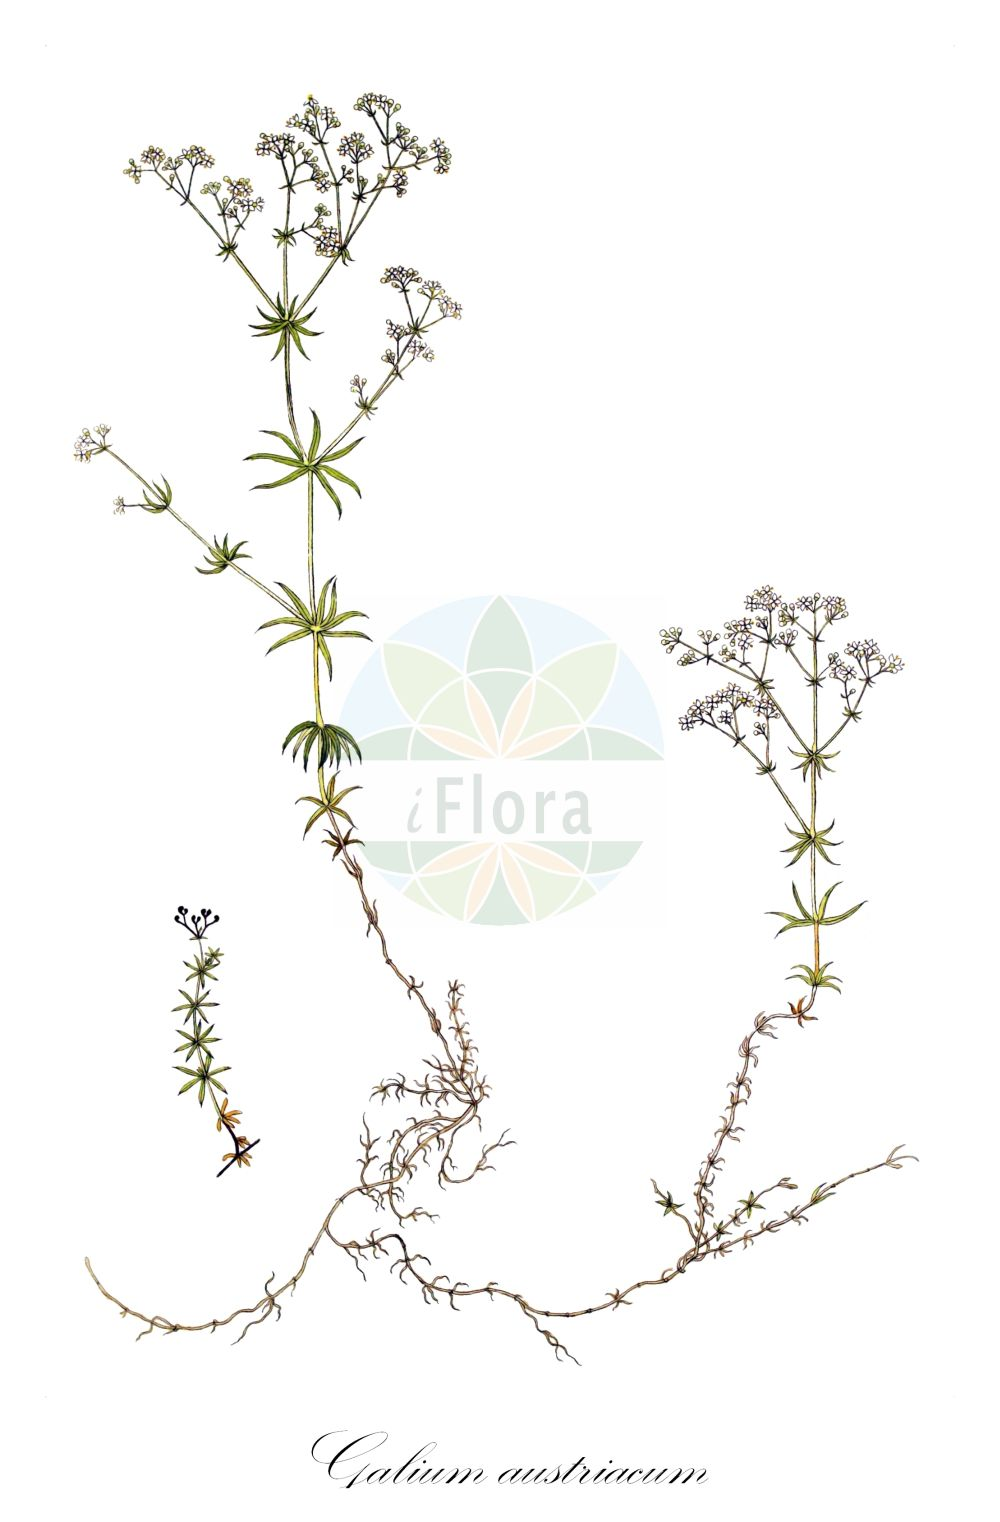 Historische Abbildung von Galium austriacum. Das Bild zeigt Blatt, Bluete, Frucht und Same. ---- Historical Drawing of Galium austriacum.The image is showing leaf, flower, fruit and seed.(Galium austriacum,Galium pumilum subsp. austriacum,Galium,Labkraut,Bedstraw,Rubiaceae,Roetegewaechse;Kaffeegewaechse;Krappgewaechse;Labkrautgewaechse,Bedstraw family,Blatt,Bluete,Frucht,Same,leaf,flower,fruit,seed,von Jacquin (1727-1817))